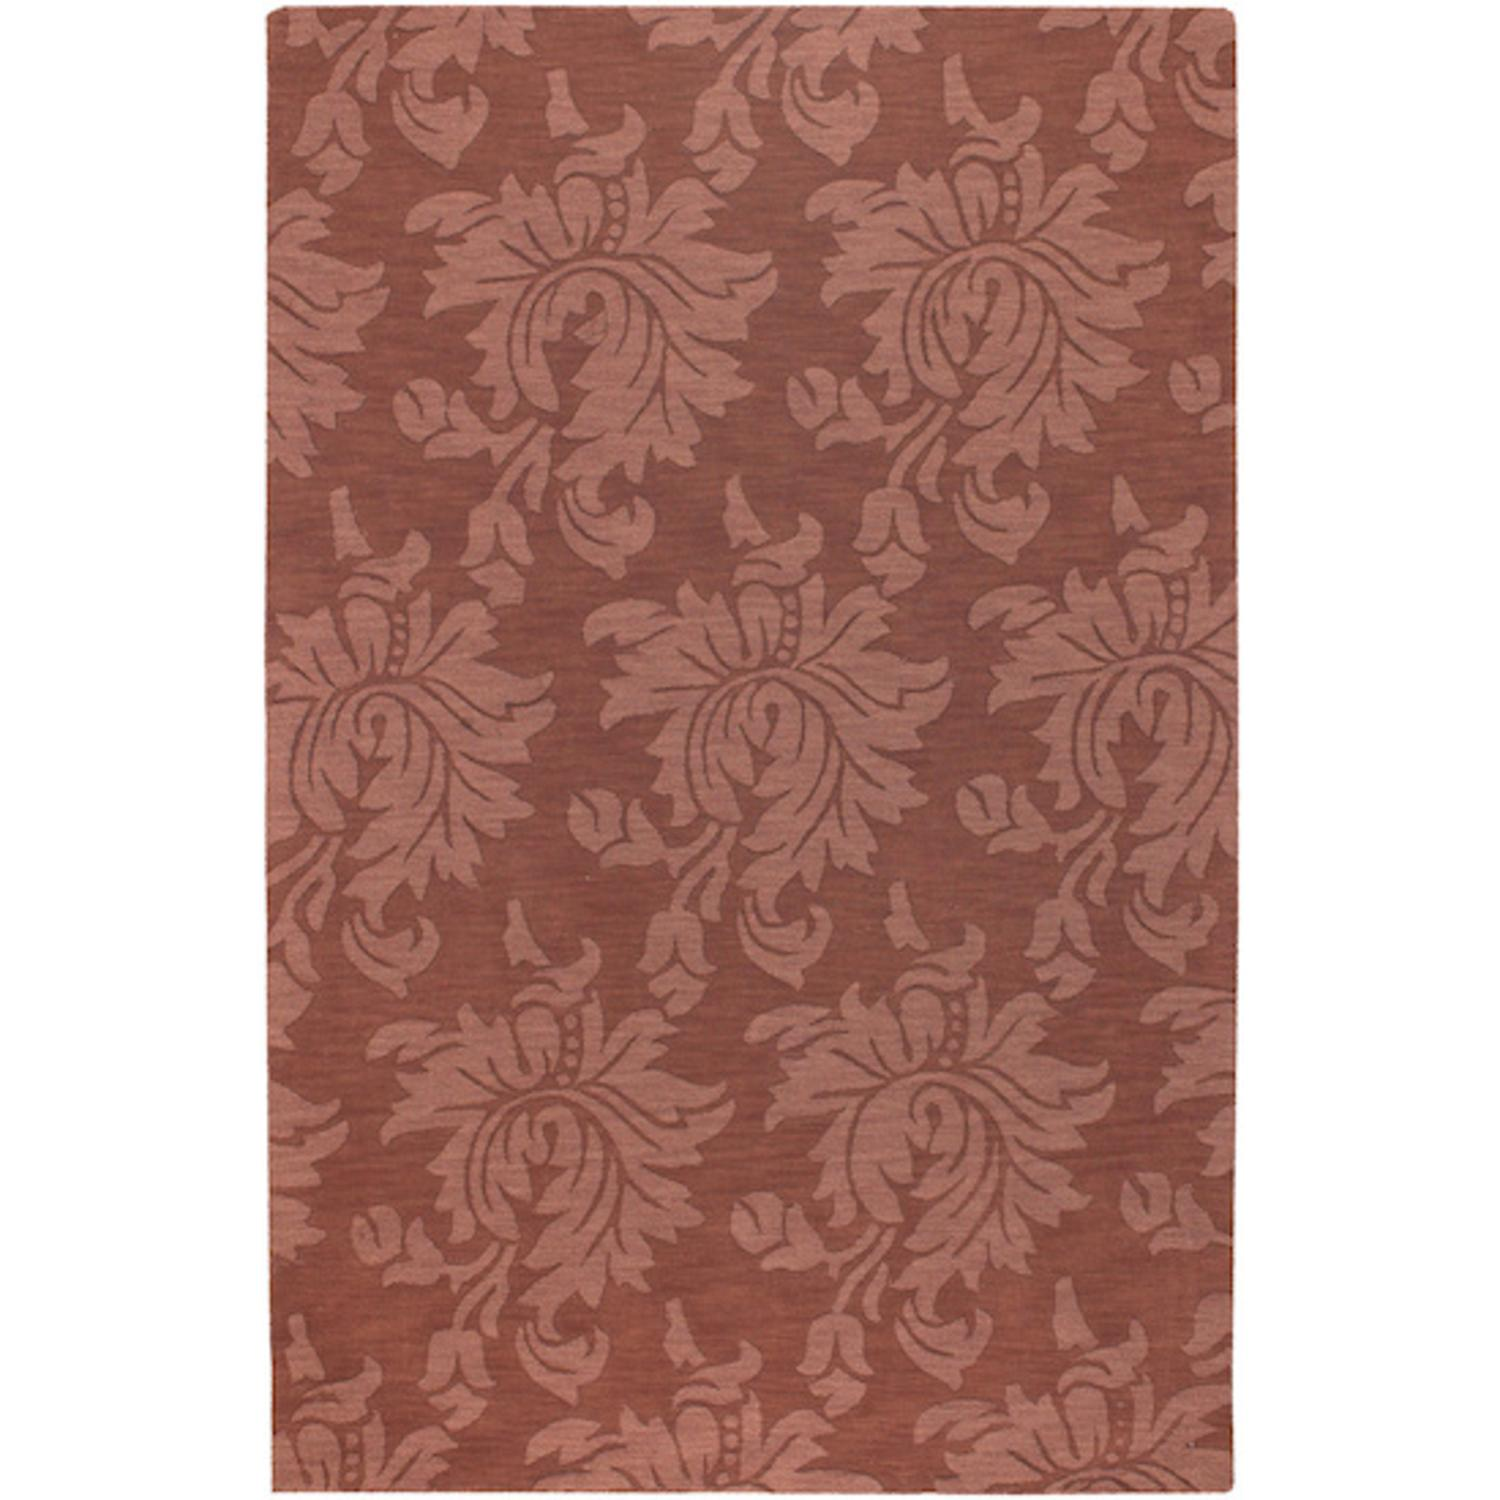 3.25' x 5.25' Giant Flower Foliage Cinnamon Spice Wool Area Throw Rug